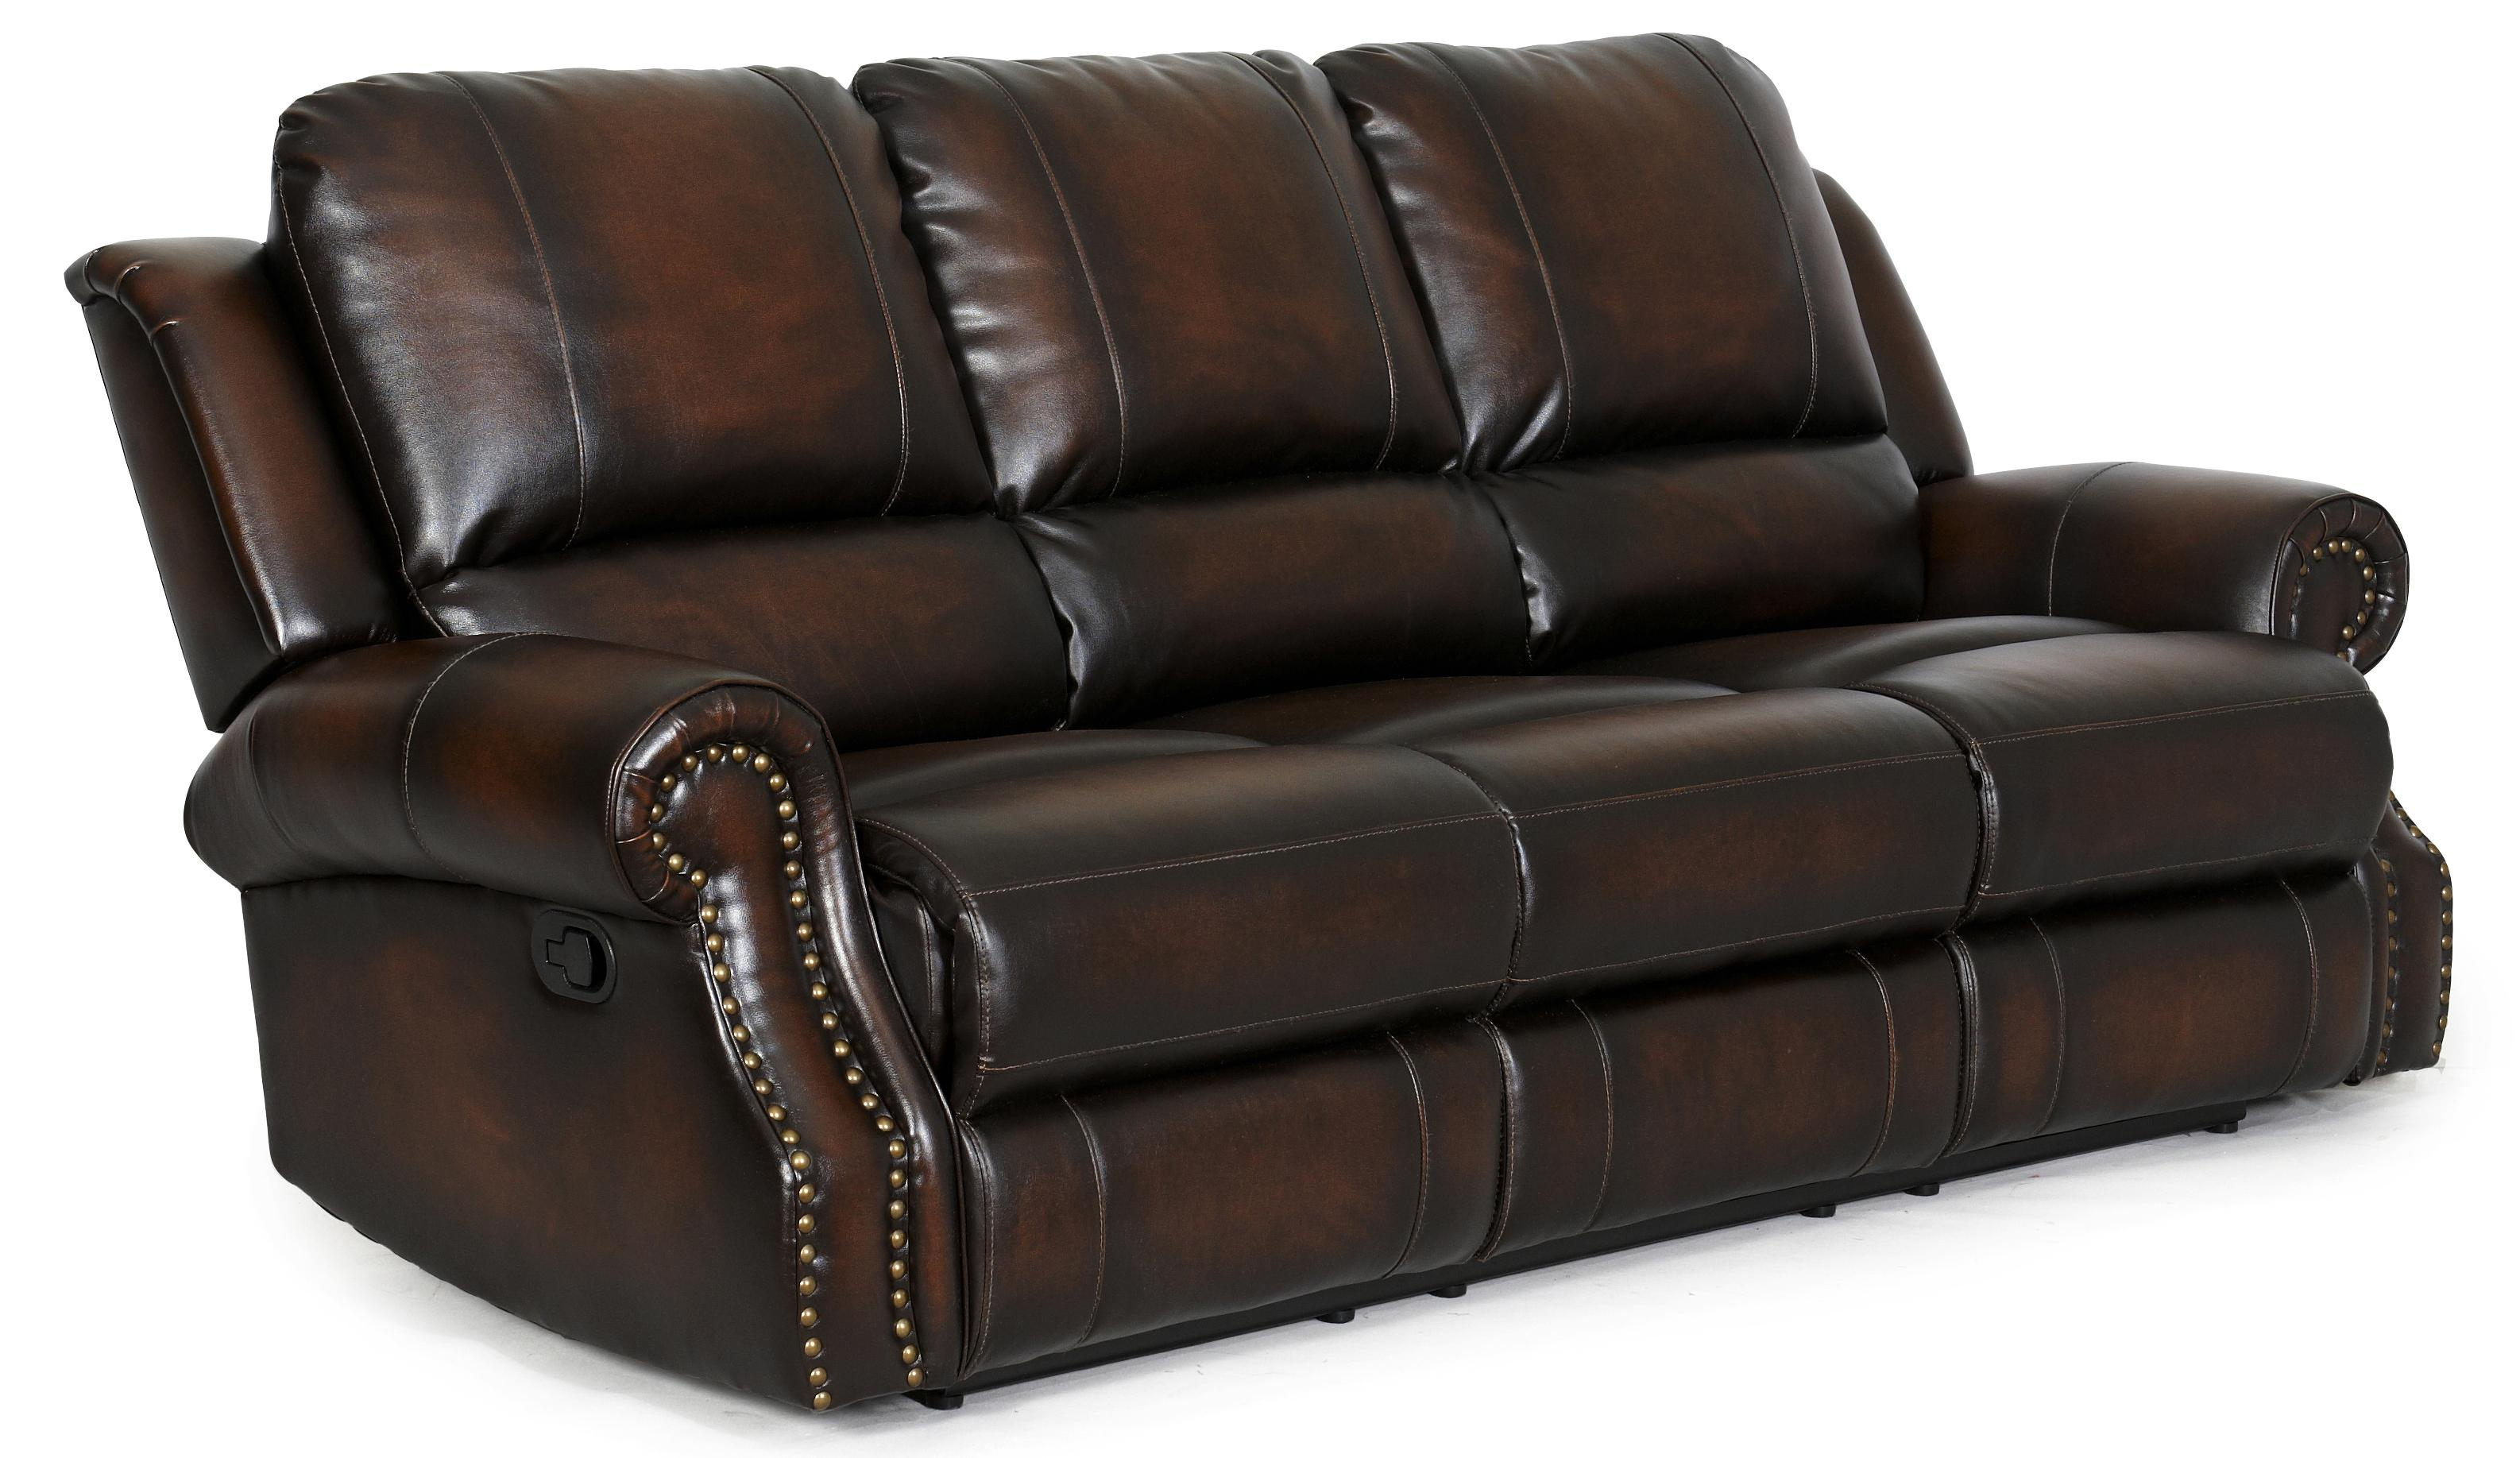 reclining sofa with nailhead trim bright blue cover ldi 869 58 transitional rolled